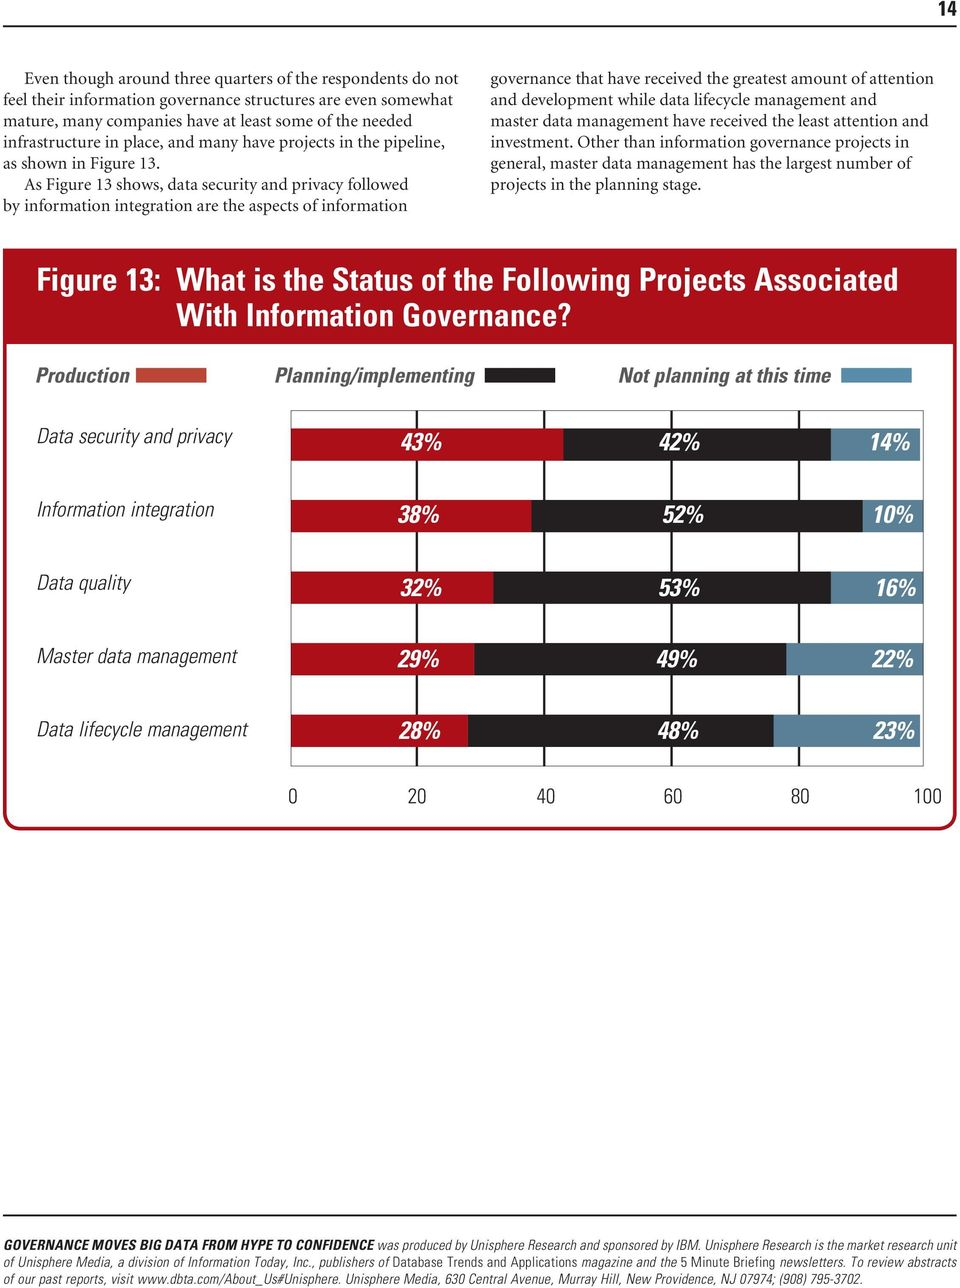 As Figure 13 shows, data security and privacy followed by information integration are the aspects of information governance that have received the greatest amount of attention and development while